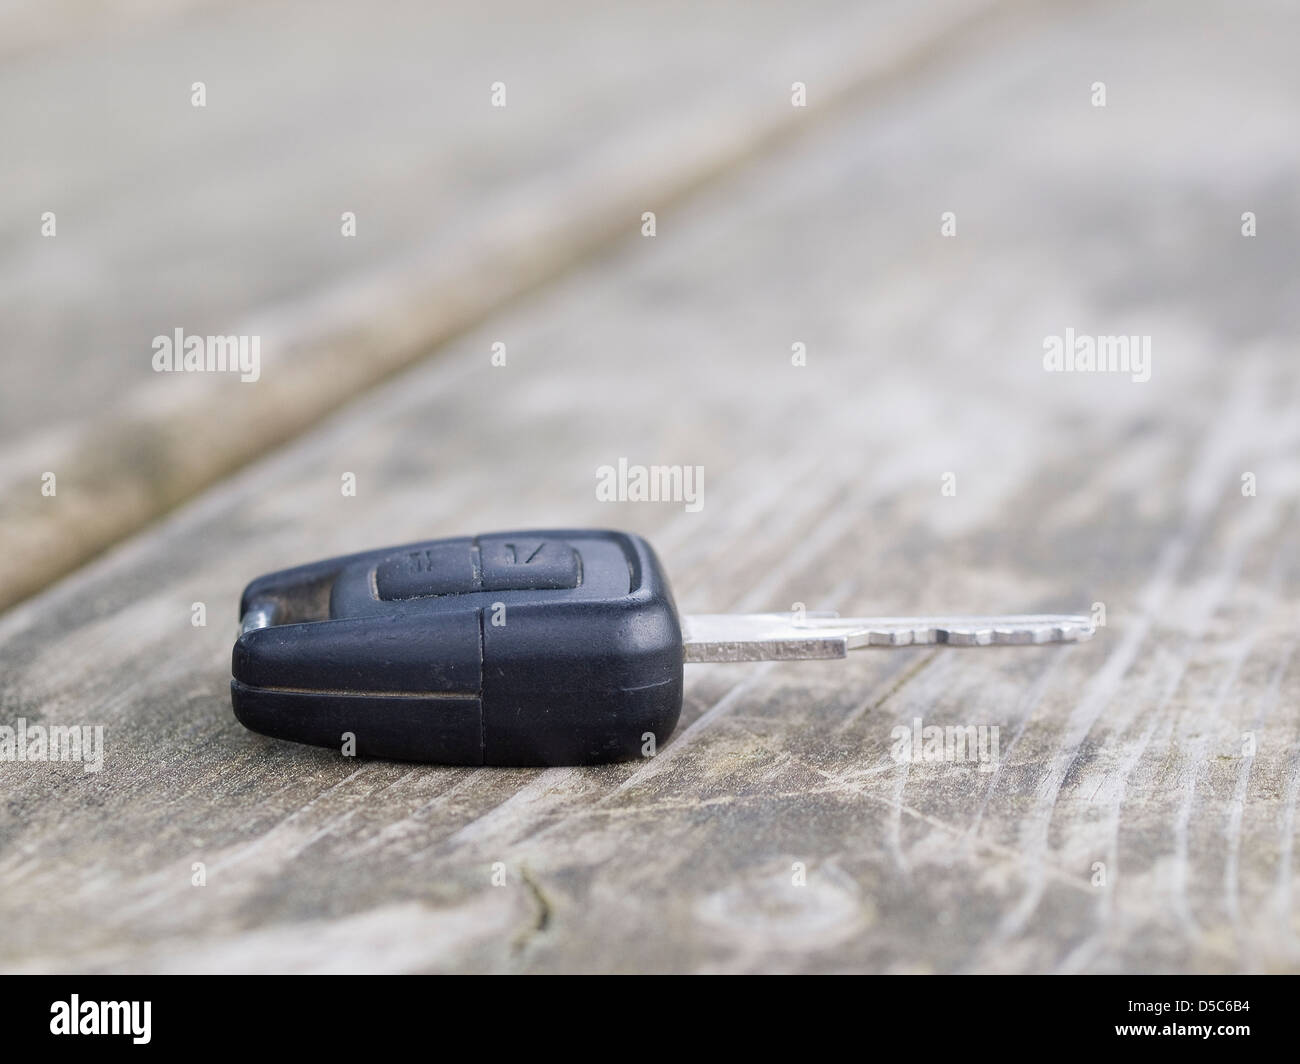 Forgotten car key on a wooden plank in a bench park. A macro detail. - Stock Image